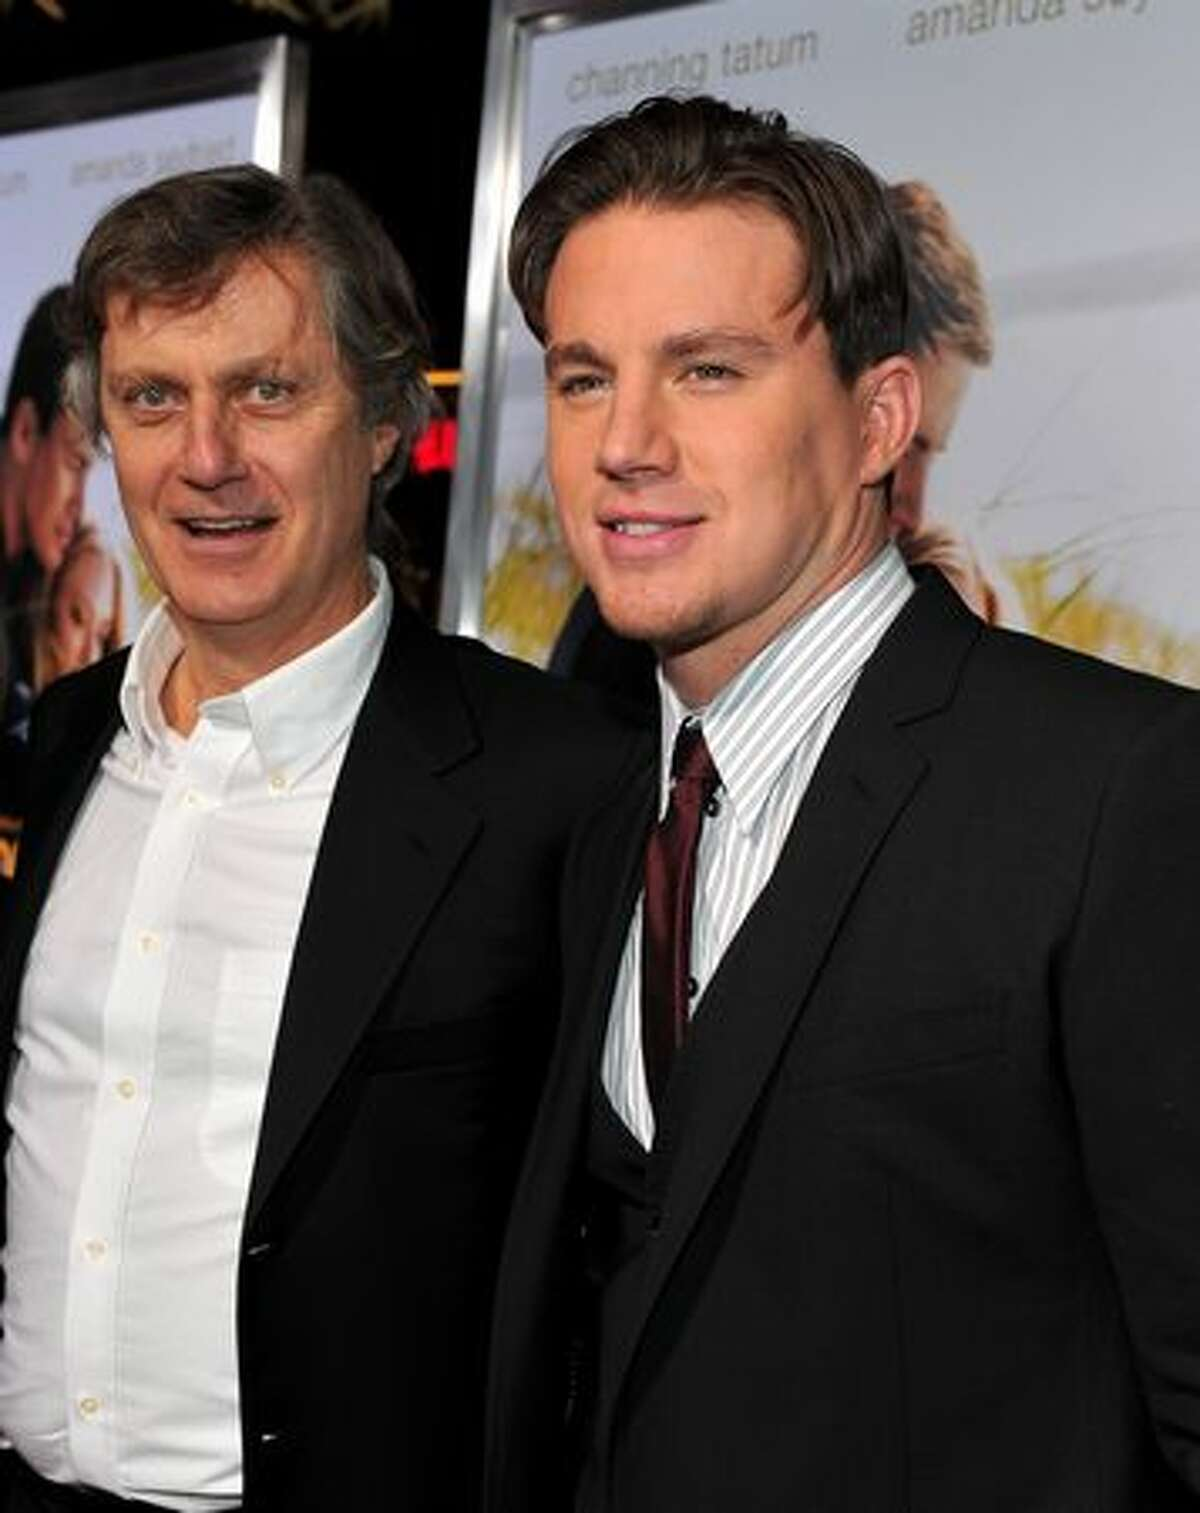 HOLLYWOOD - FEBRUARY 01: Director Lasse Halstrom and actor Channing Tatum arrive at the premiere of Screen Gem's